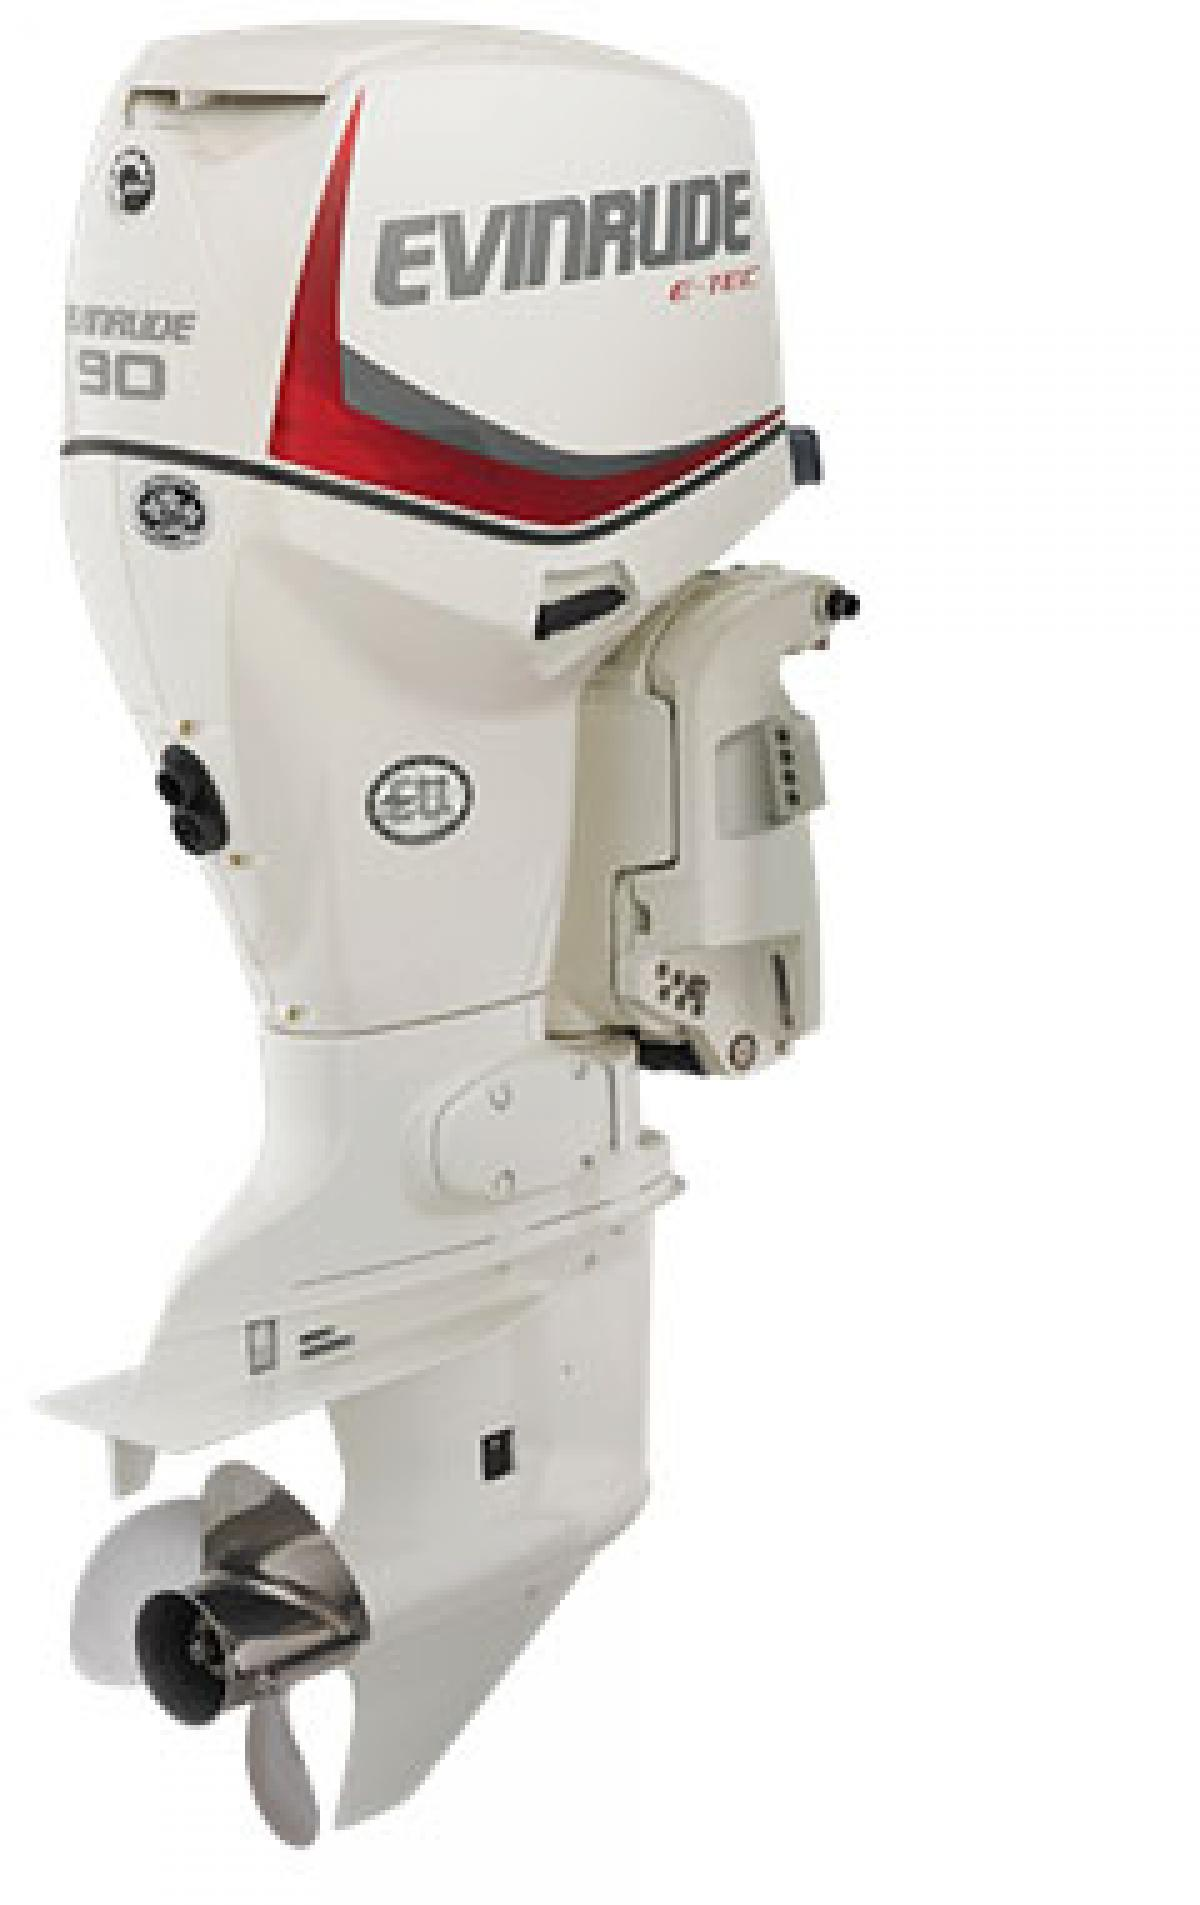 Evinrude E-tec 90hp Direct Injection Outboard - JV Marine